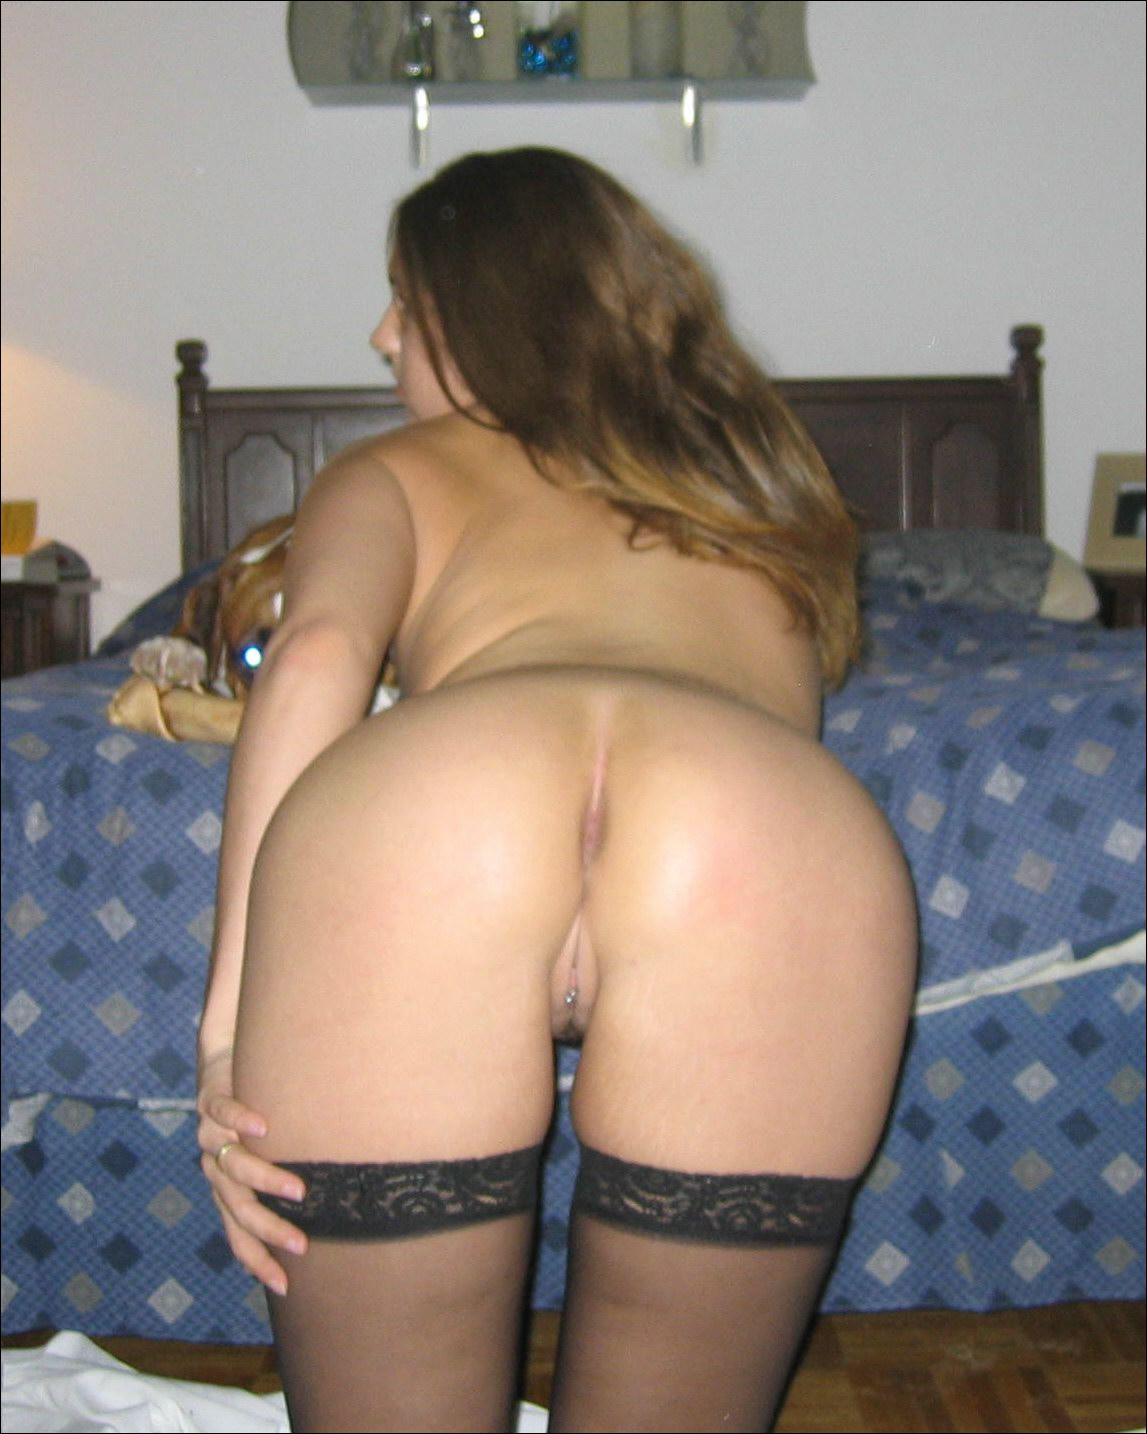 Love wife ass nudes able